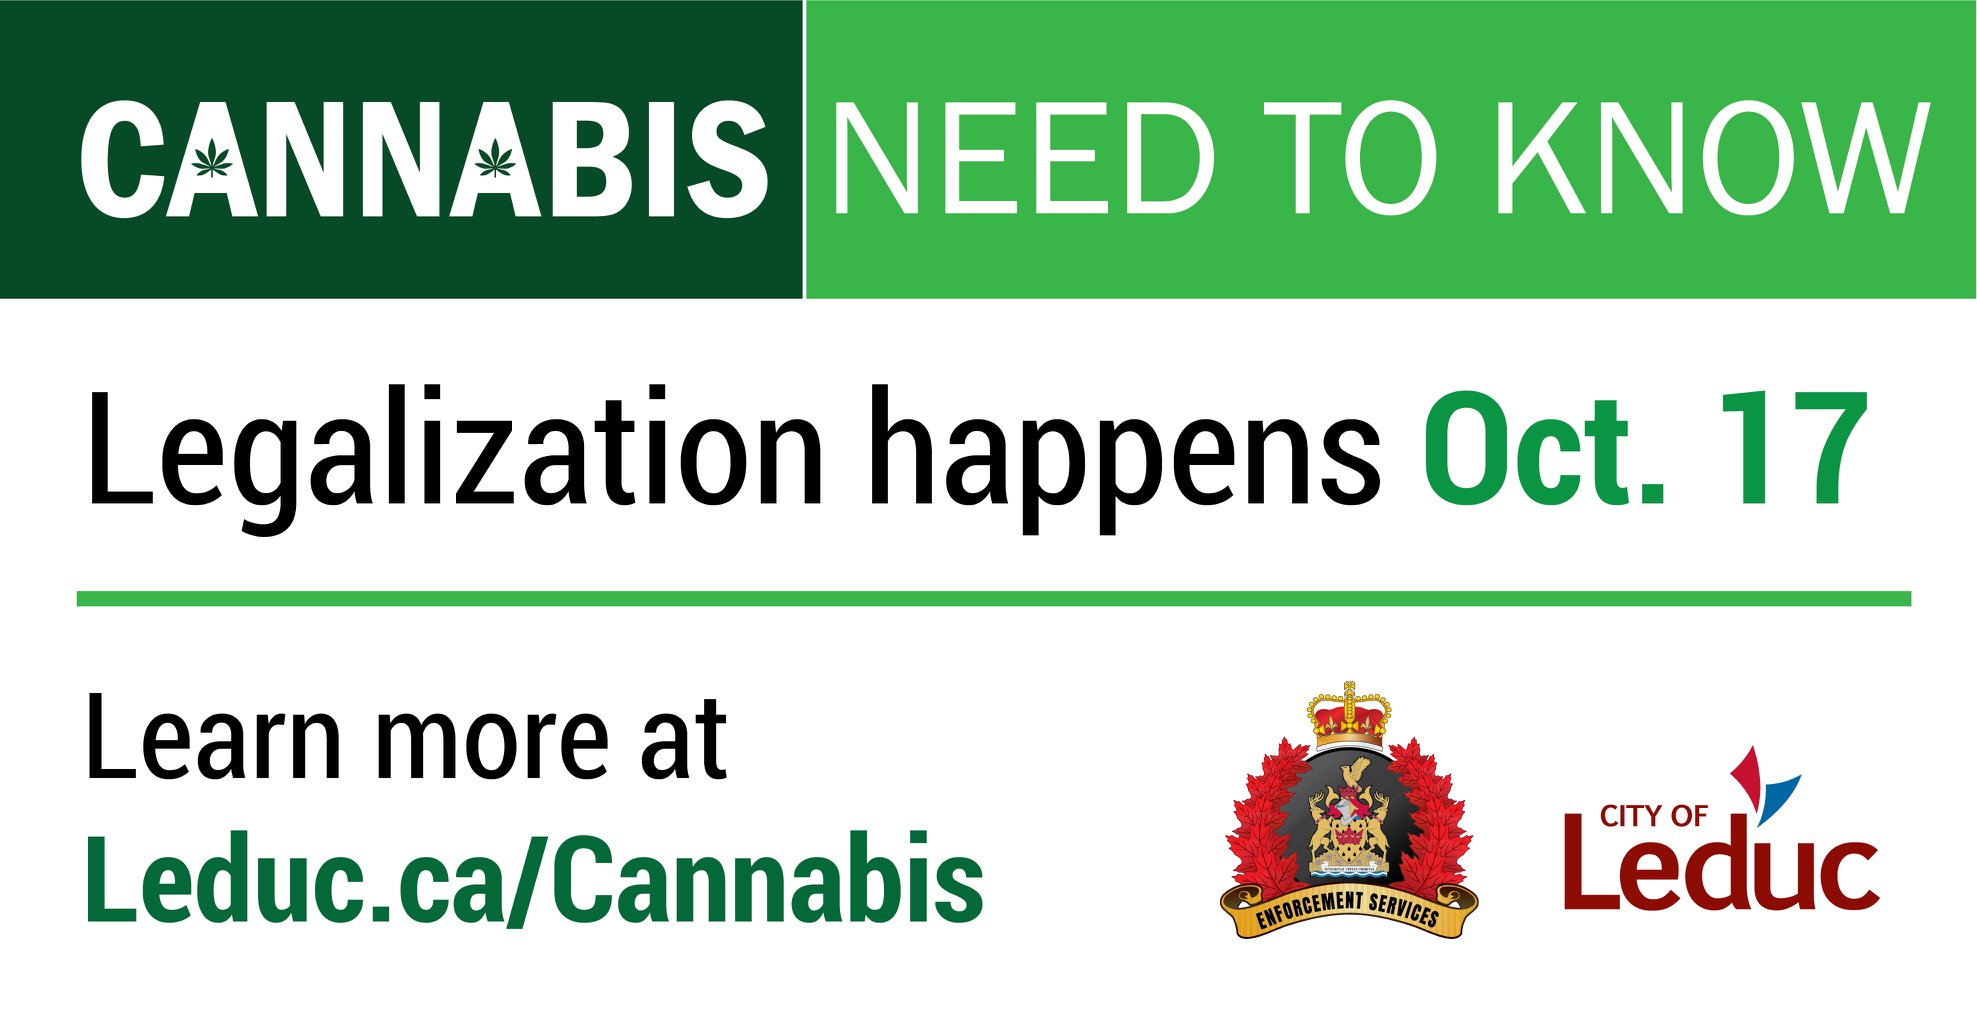 City of Leduc - cannabis pot awareness campaign